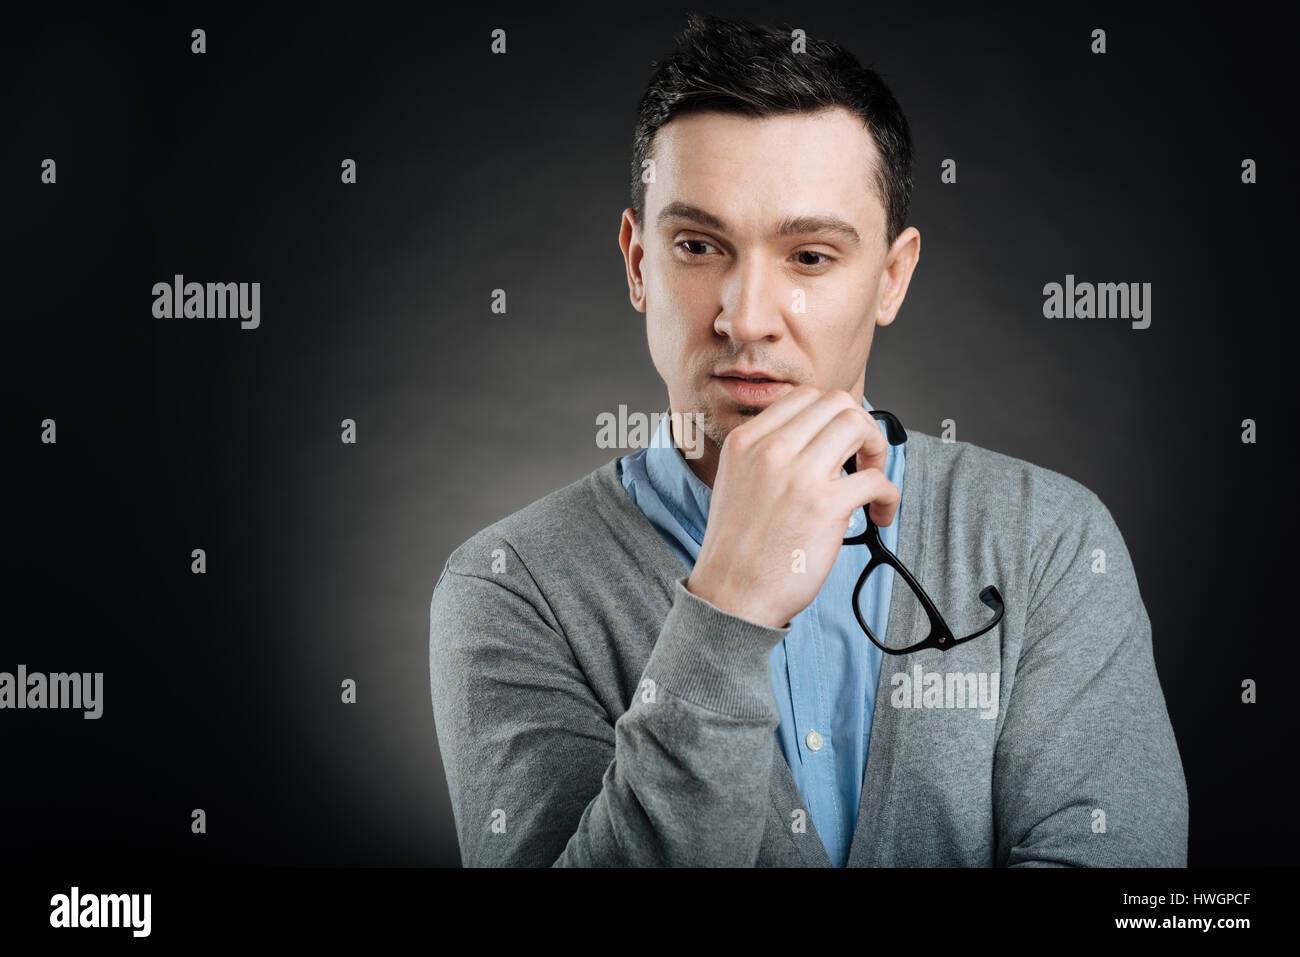 Pensive man keeping glasses in right hand - Stock Image